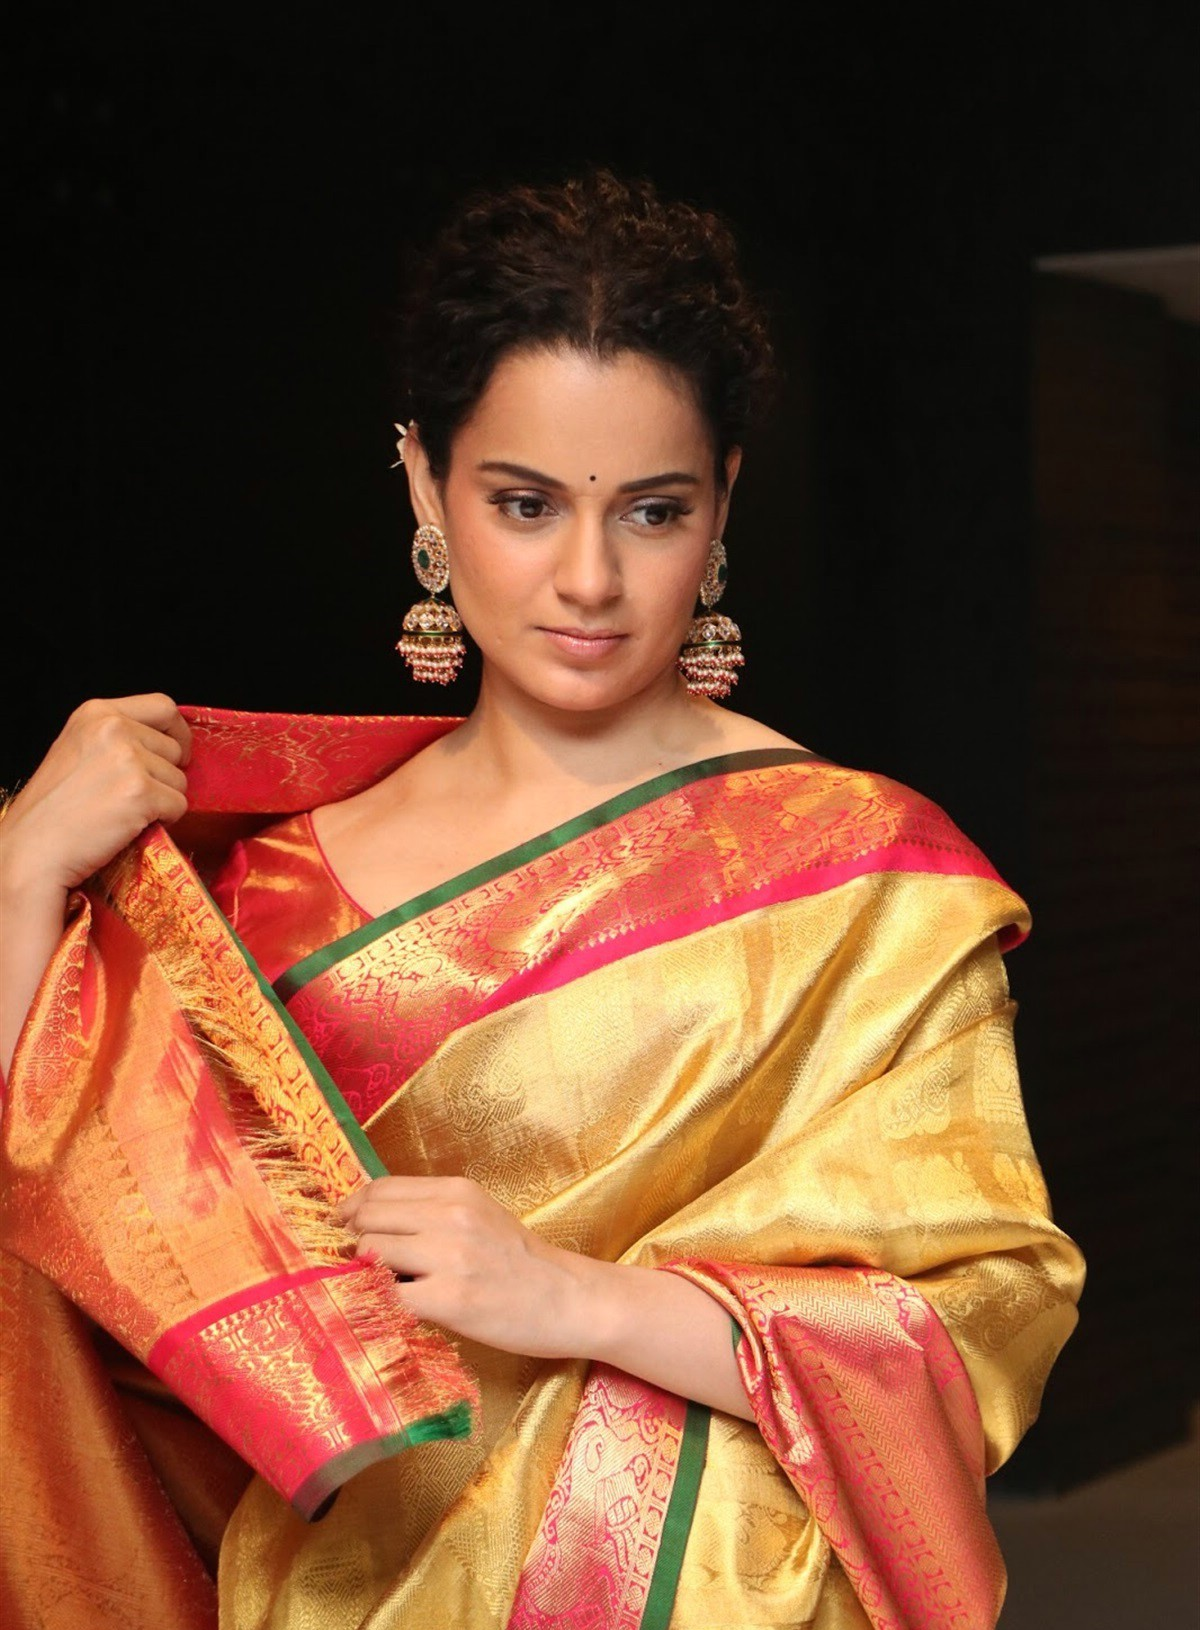 actress-kangana-ranaut-silk-saree-stills-4.